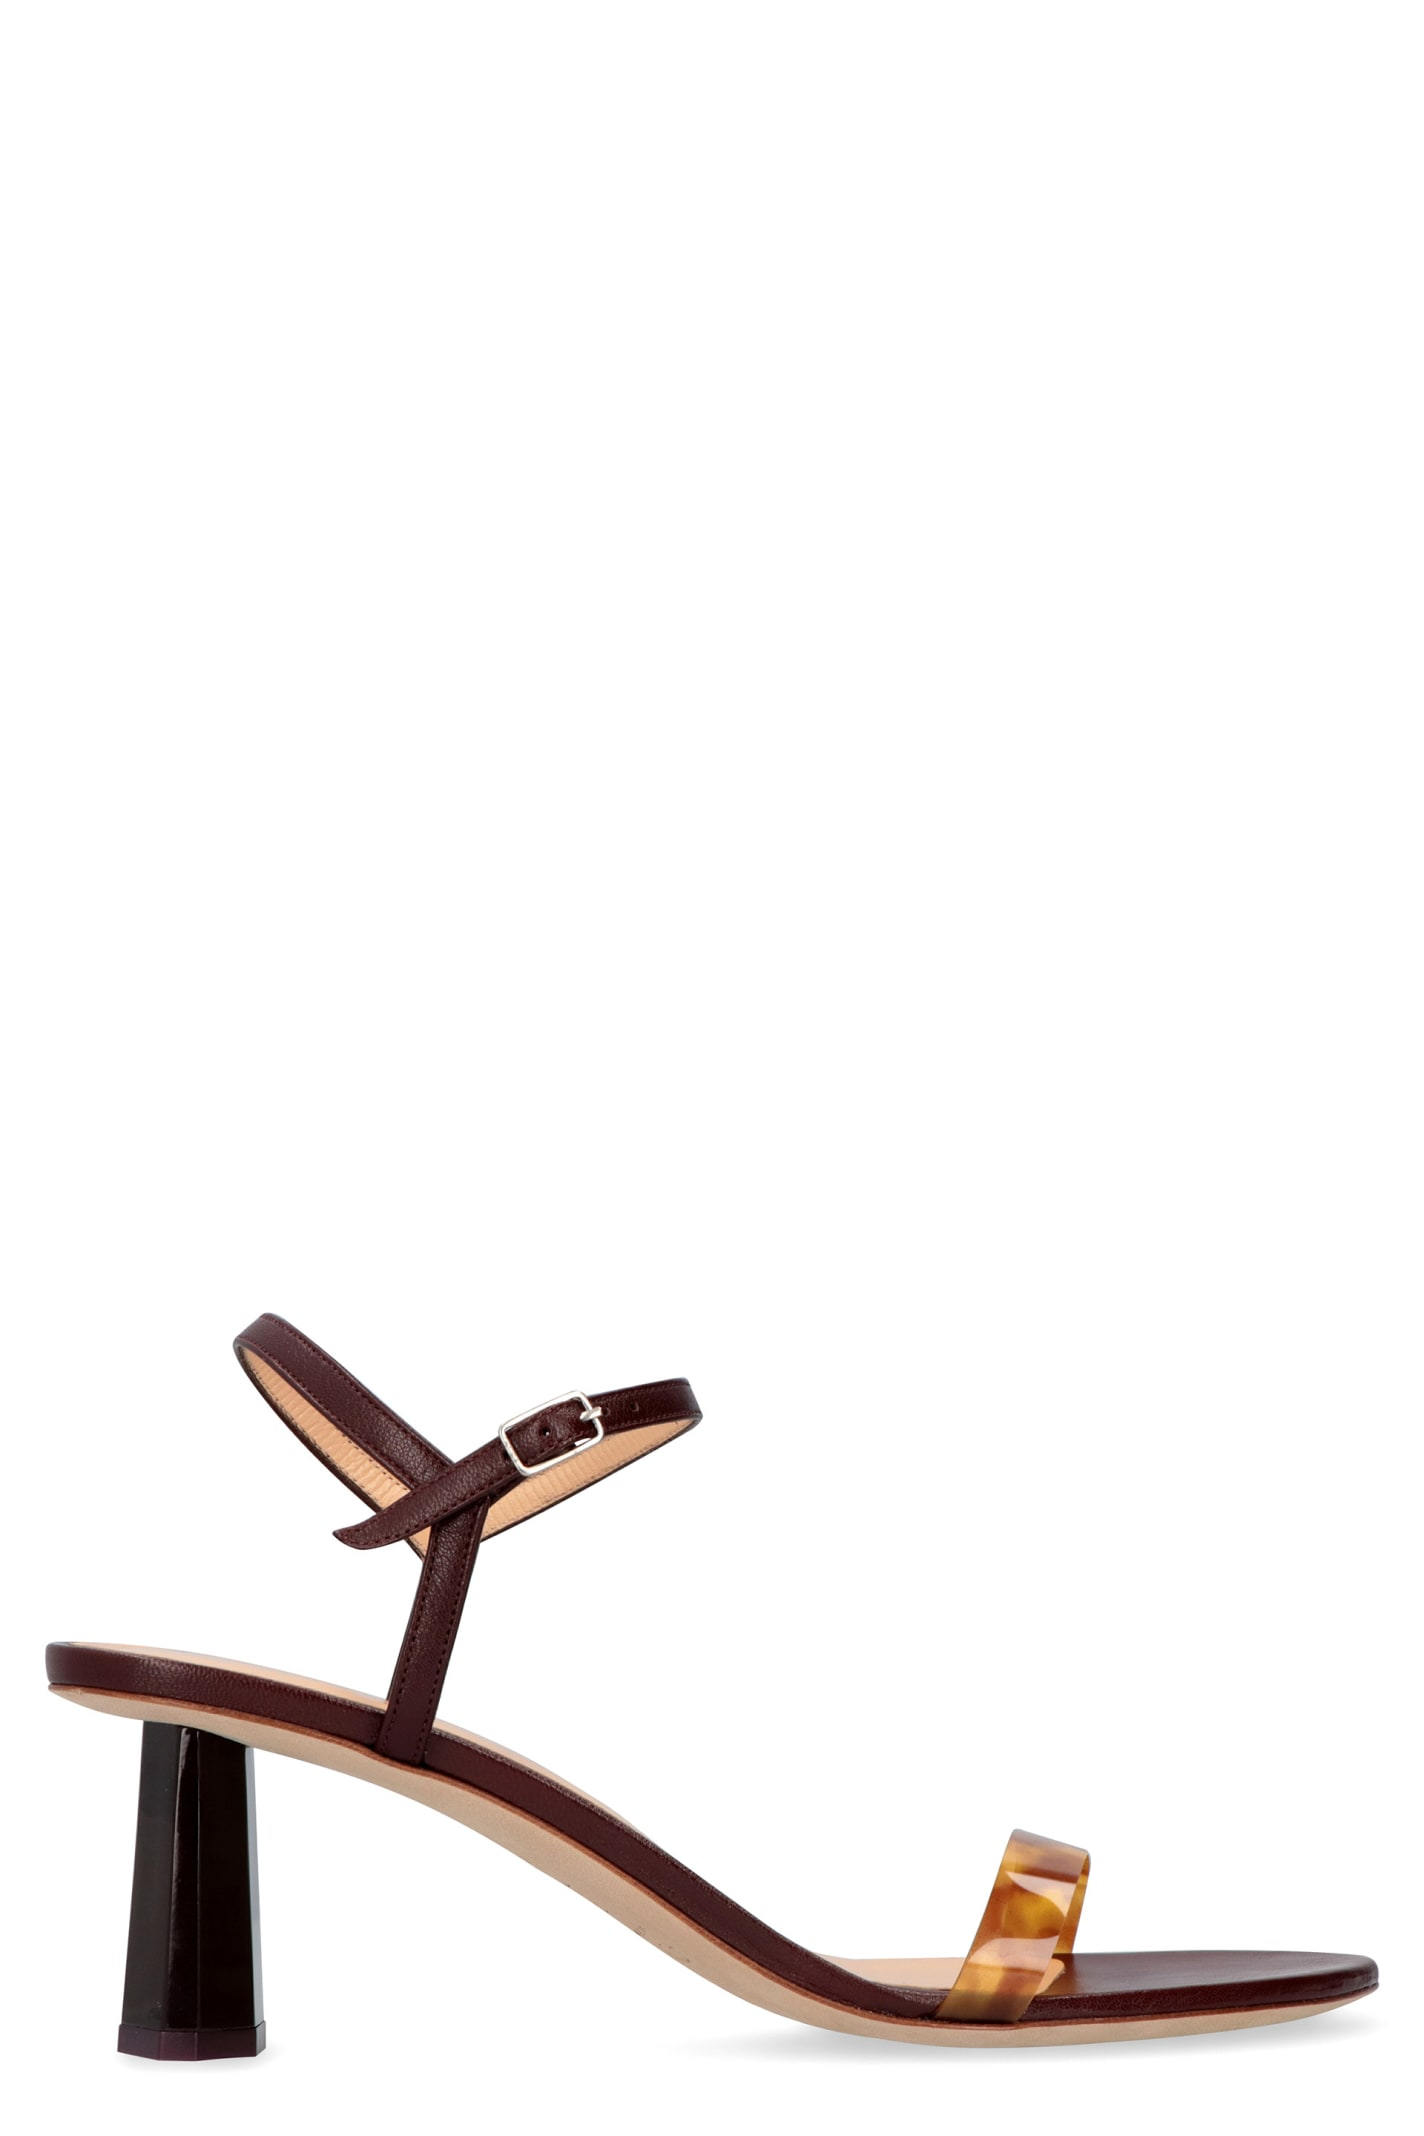 BY FAR Magnolia Leather Sandals